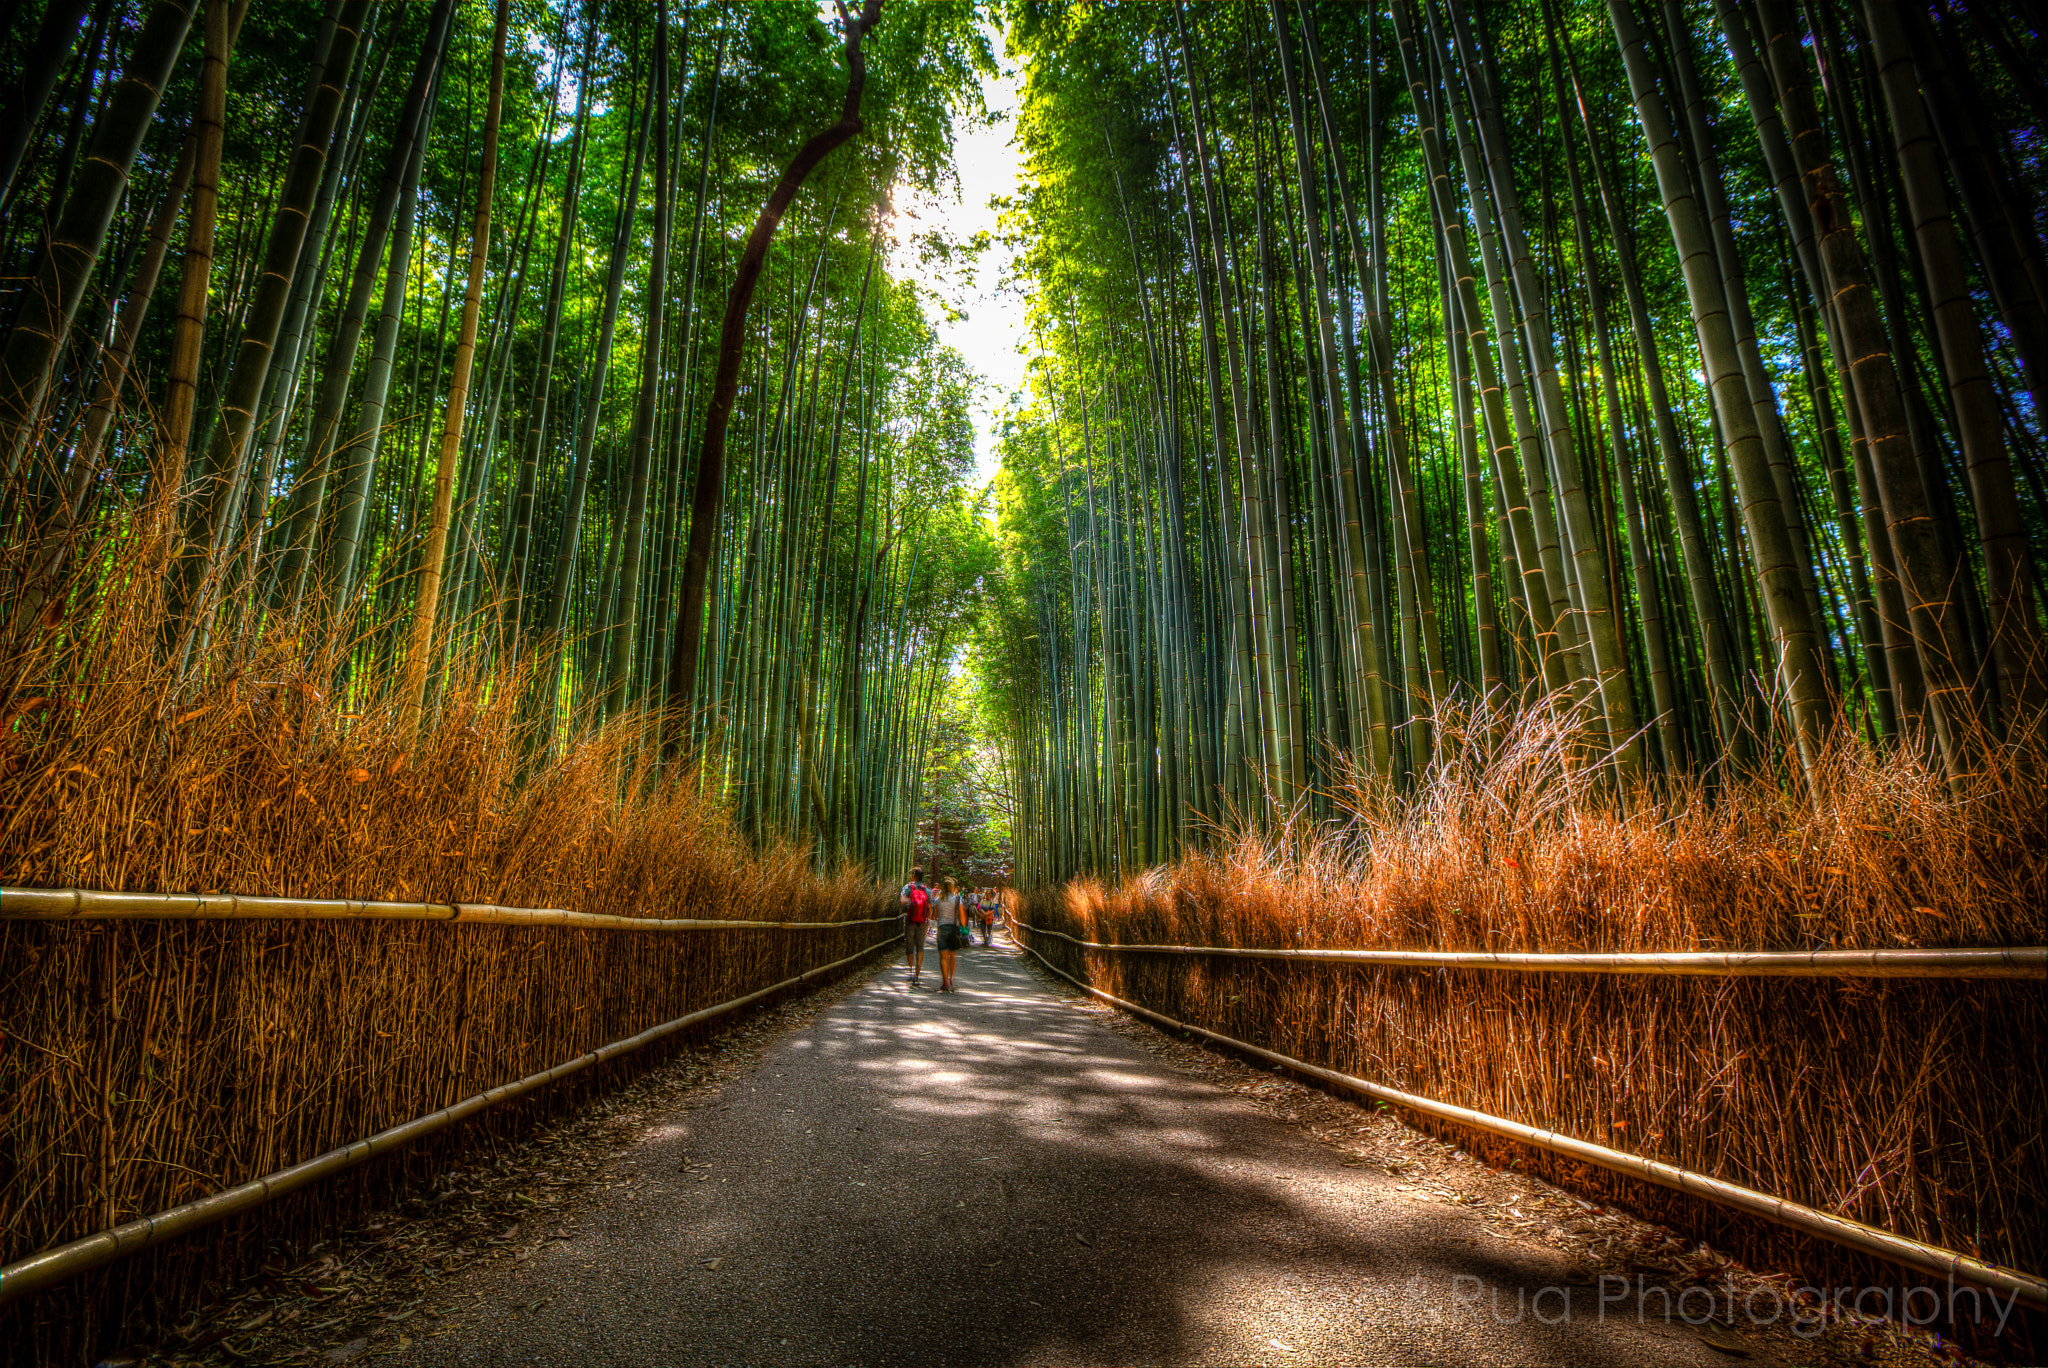 Photograph Bamboo forest Kyoto by Huy Tonthat on 500px